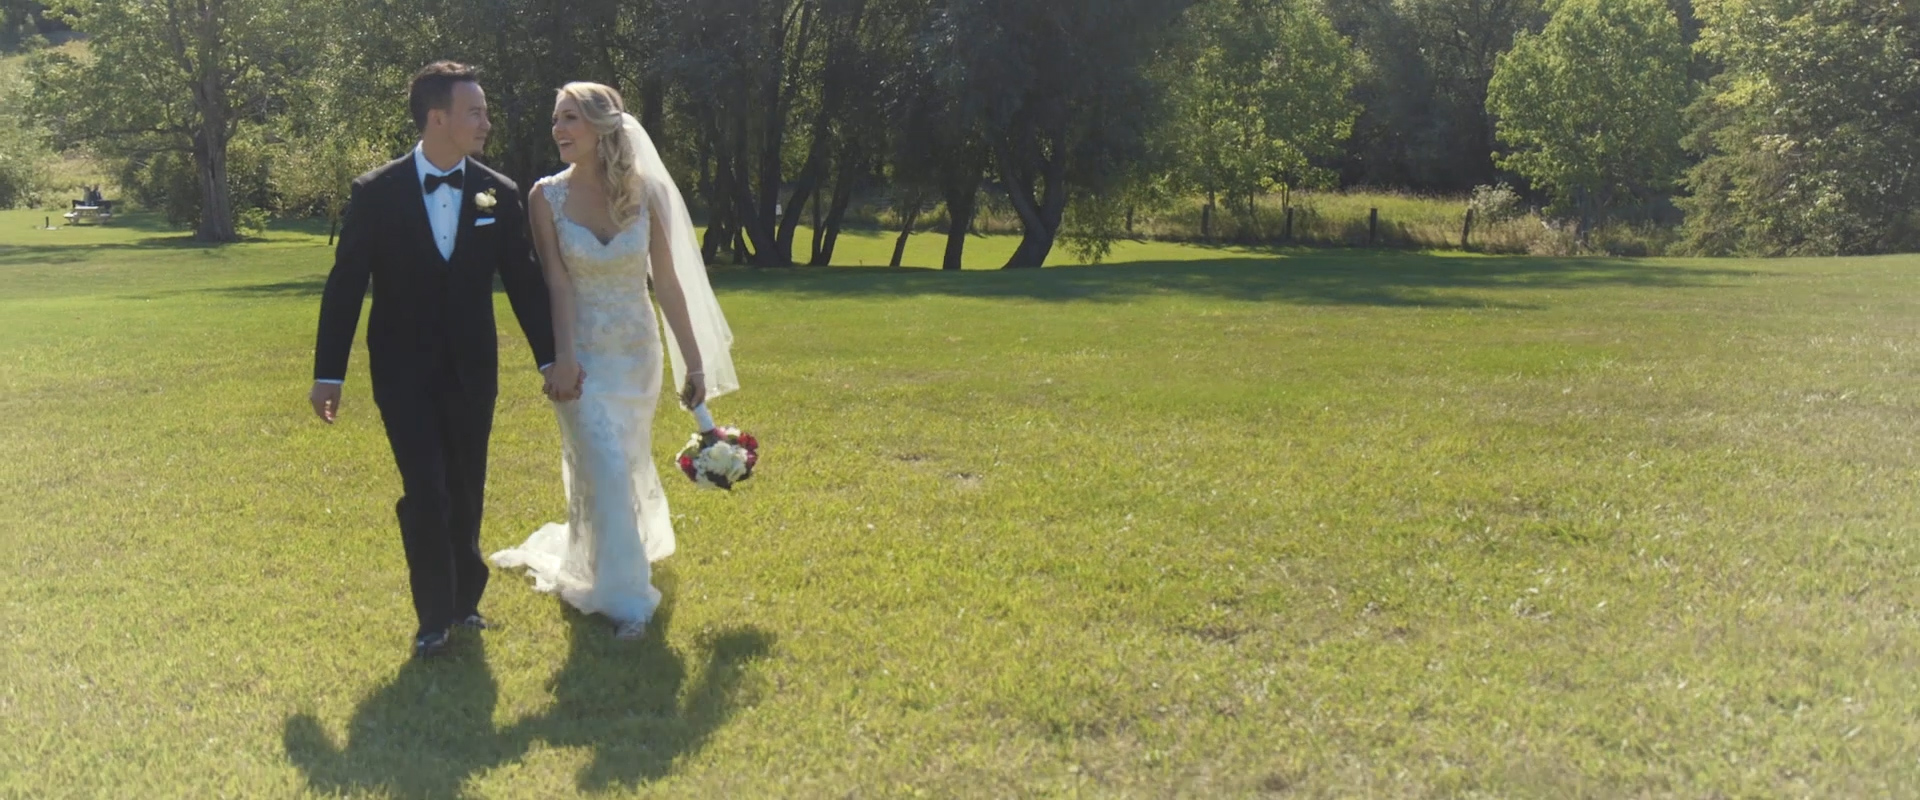 An image of a bride and groom walking on a vineyard on their wedding day; taken from a Toronto Wedding Video